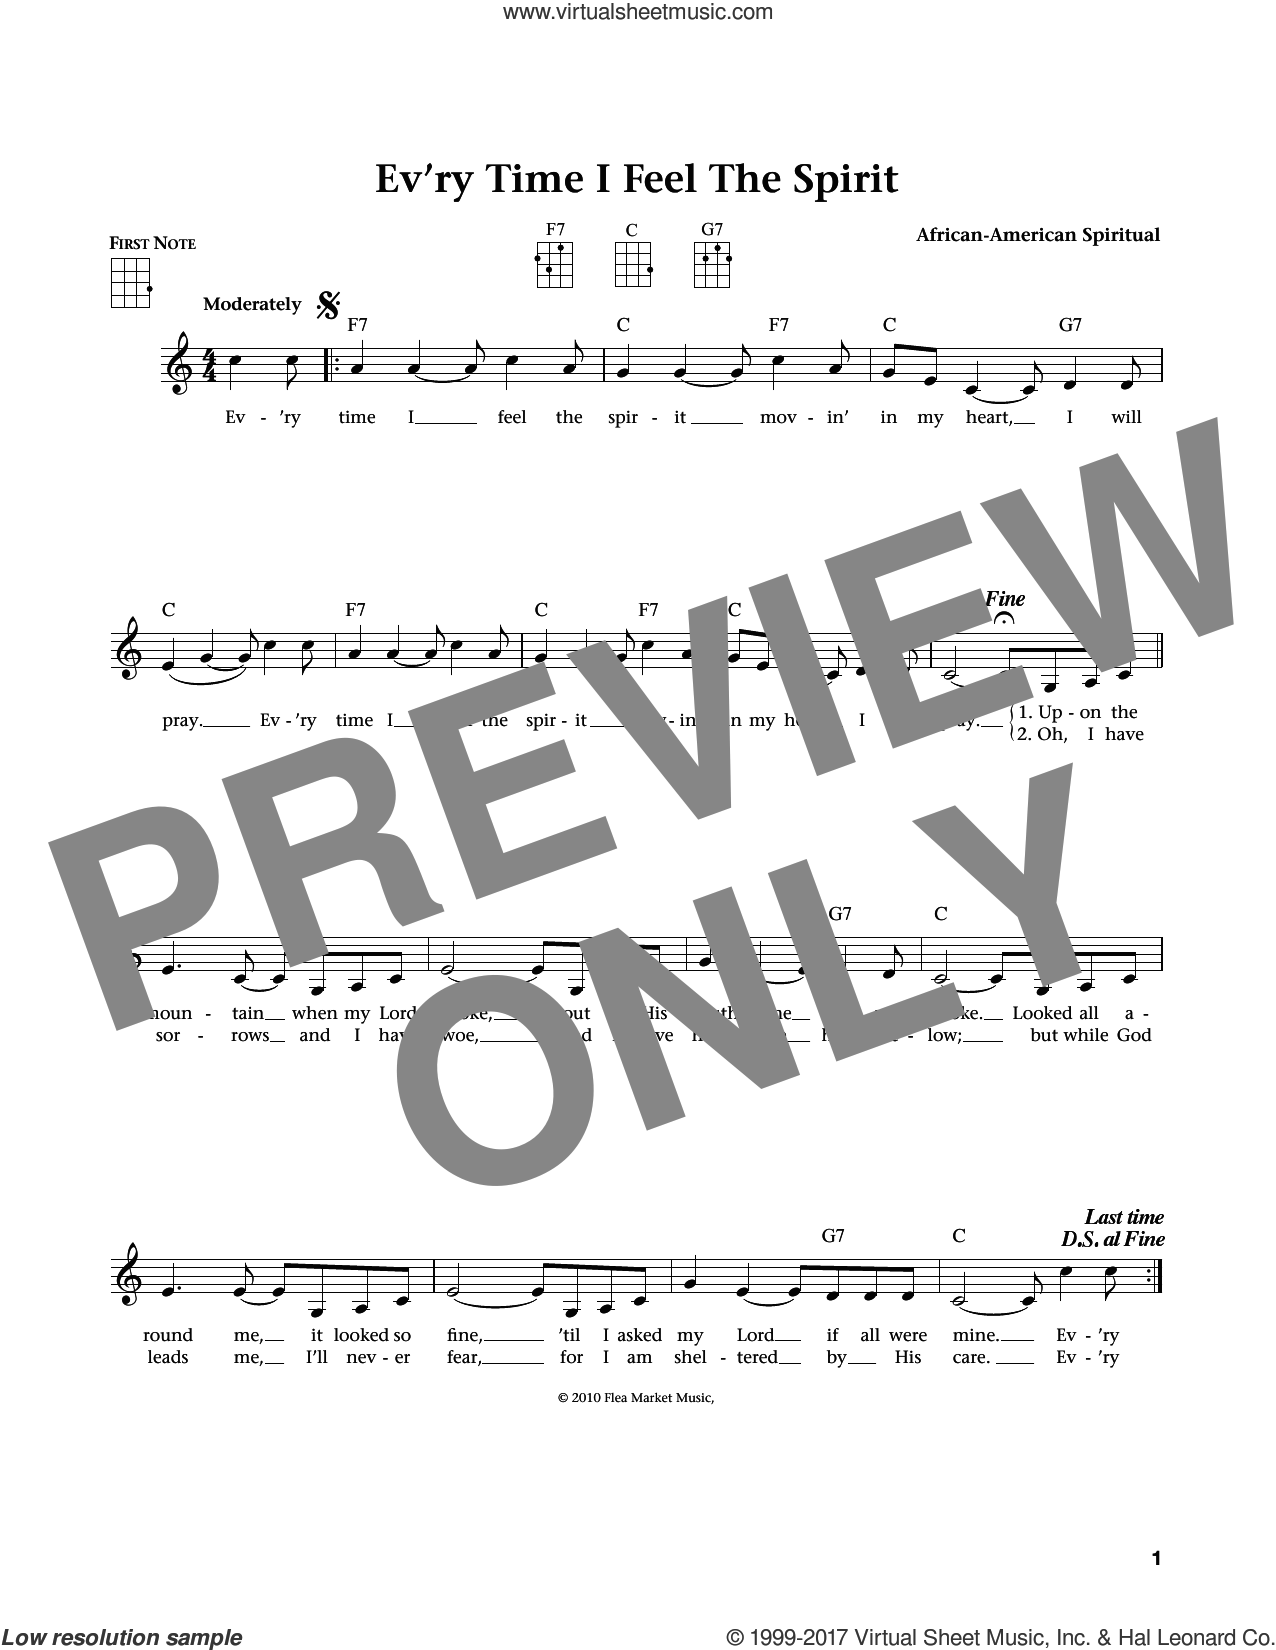 Every Time I Feel The Spirit (from The Daily Ukulele) (arr. Liz and Jim Beloff) sheet music for ukulele , Jim Beloff and Liz Beloff, intermediate skill level